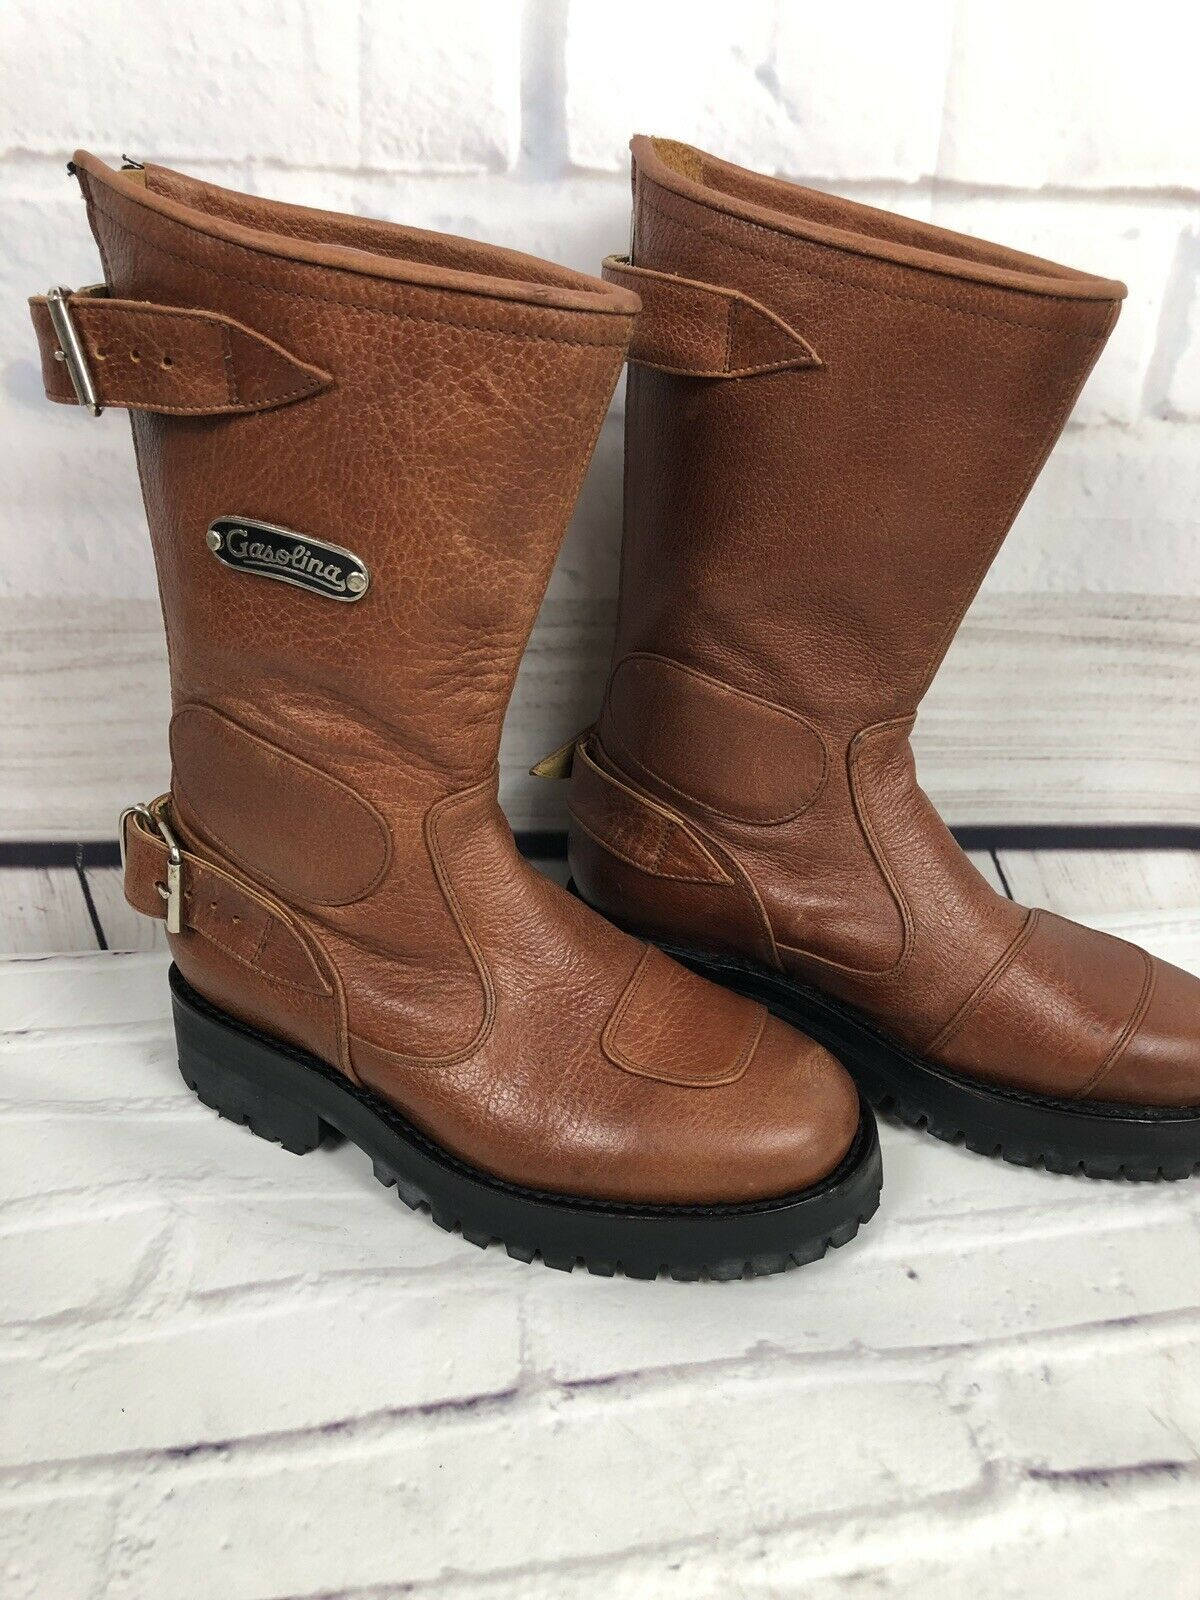 NEW Gasolina Men's High Octane Hand Made Brown Motorcycle Boots Size 5.5 D